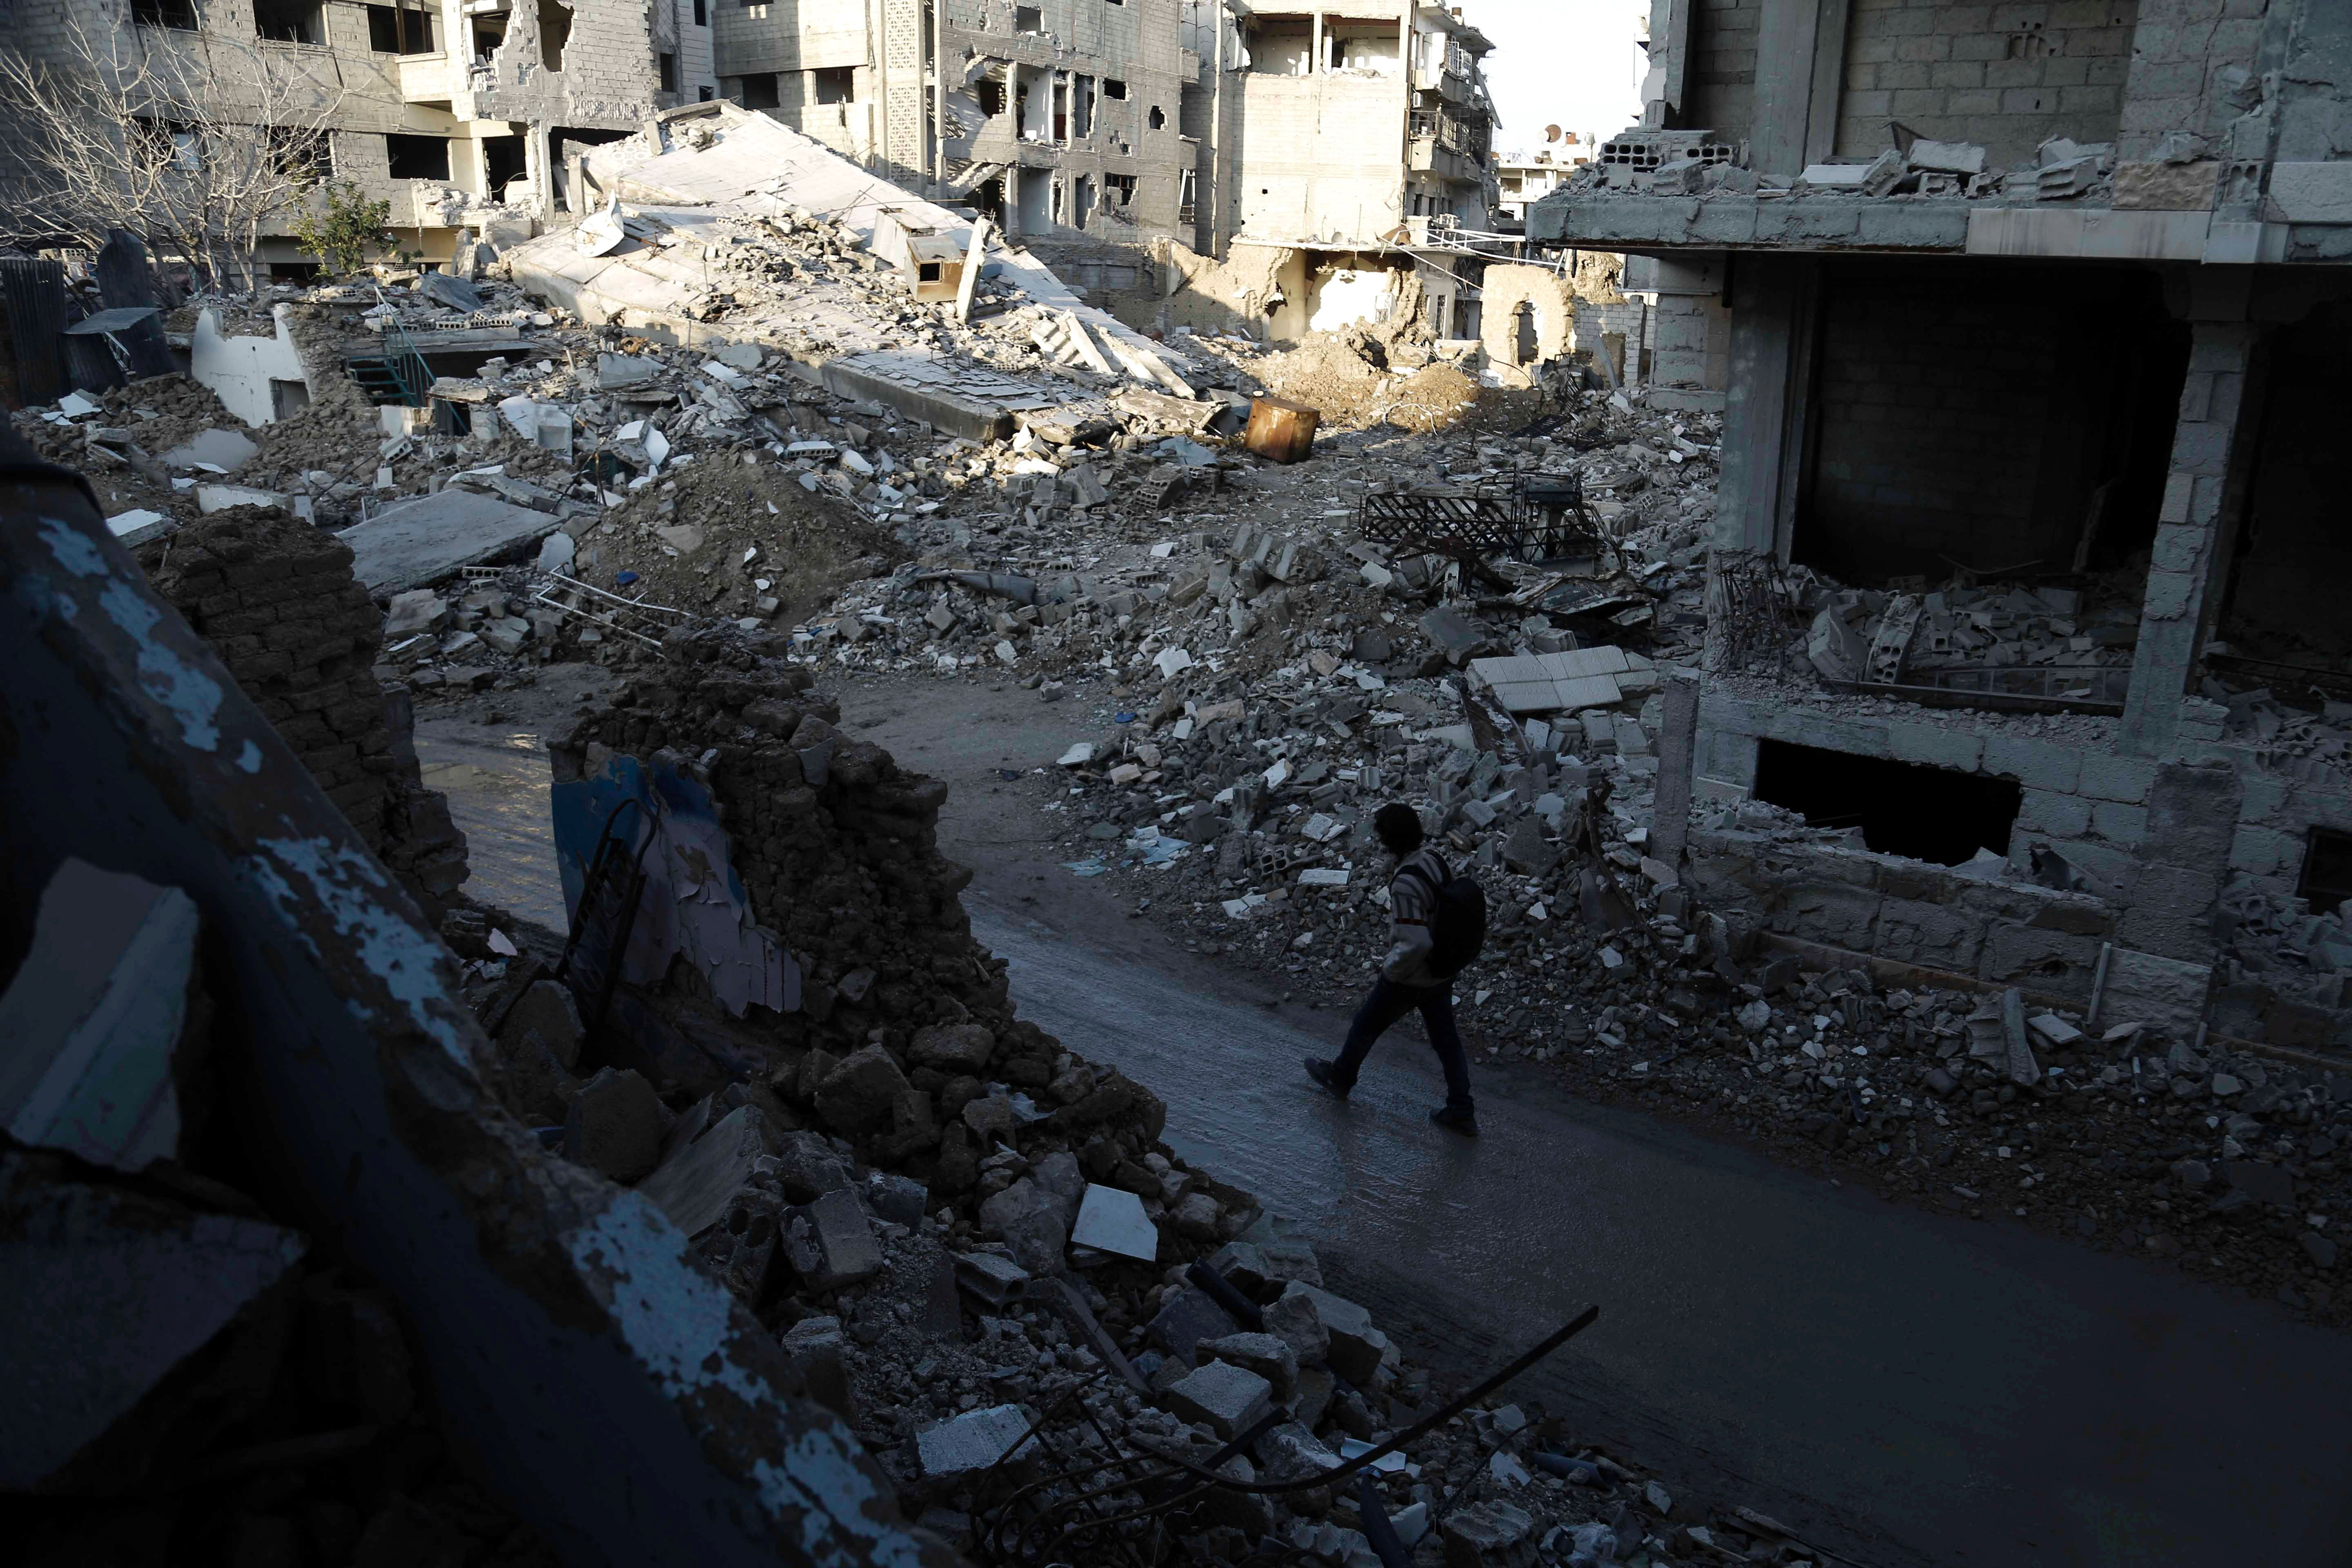 Syrian man walks along a street damaged by shelling in the neighborhood of Jobar, on the eastern outskirts of the capital Damascus, on Feb. 24, 2016